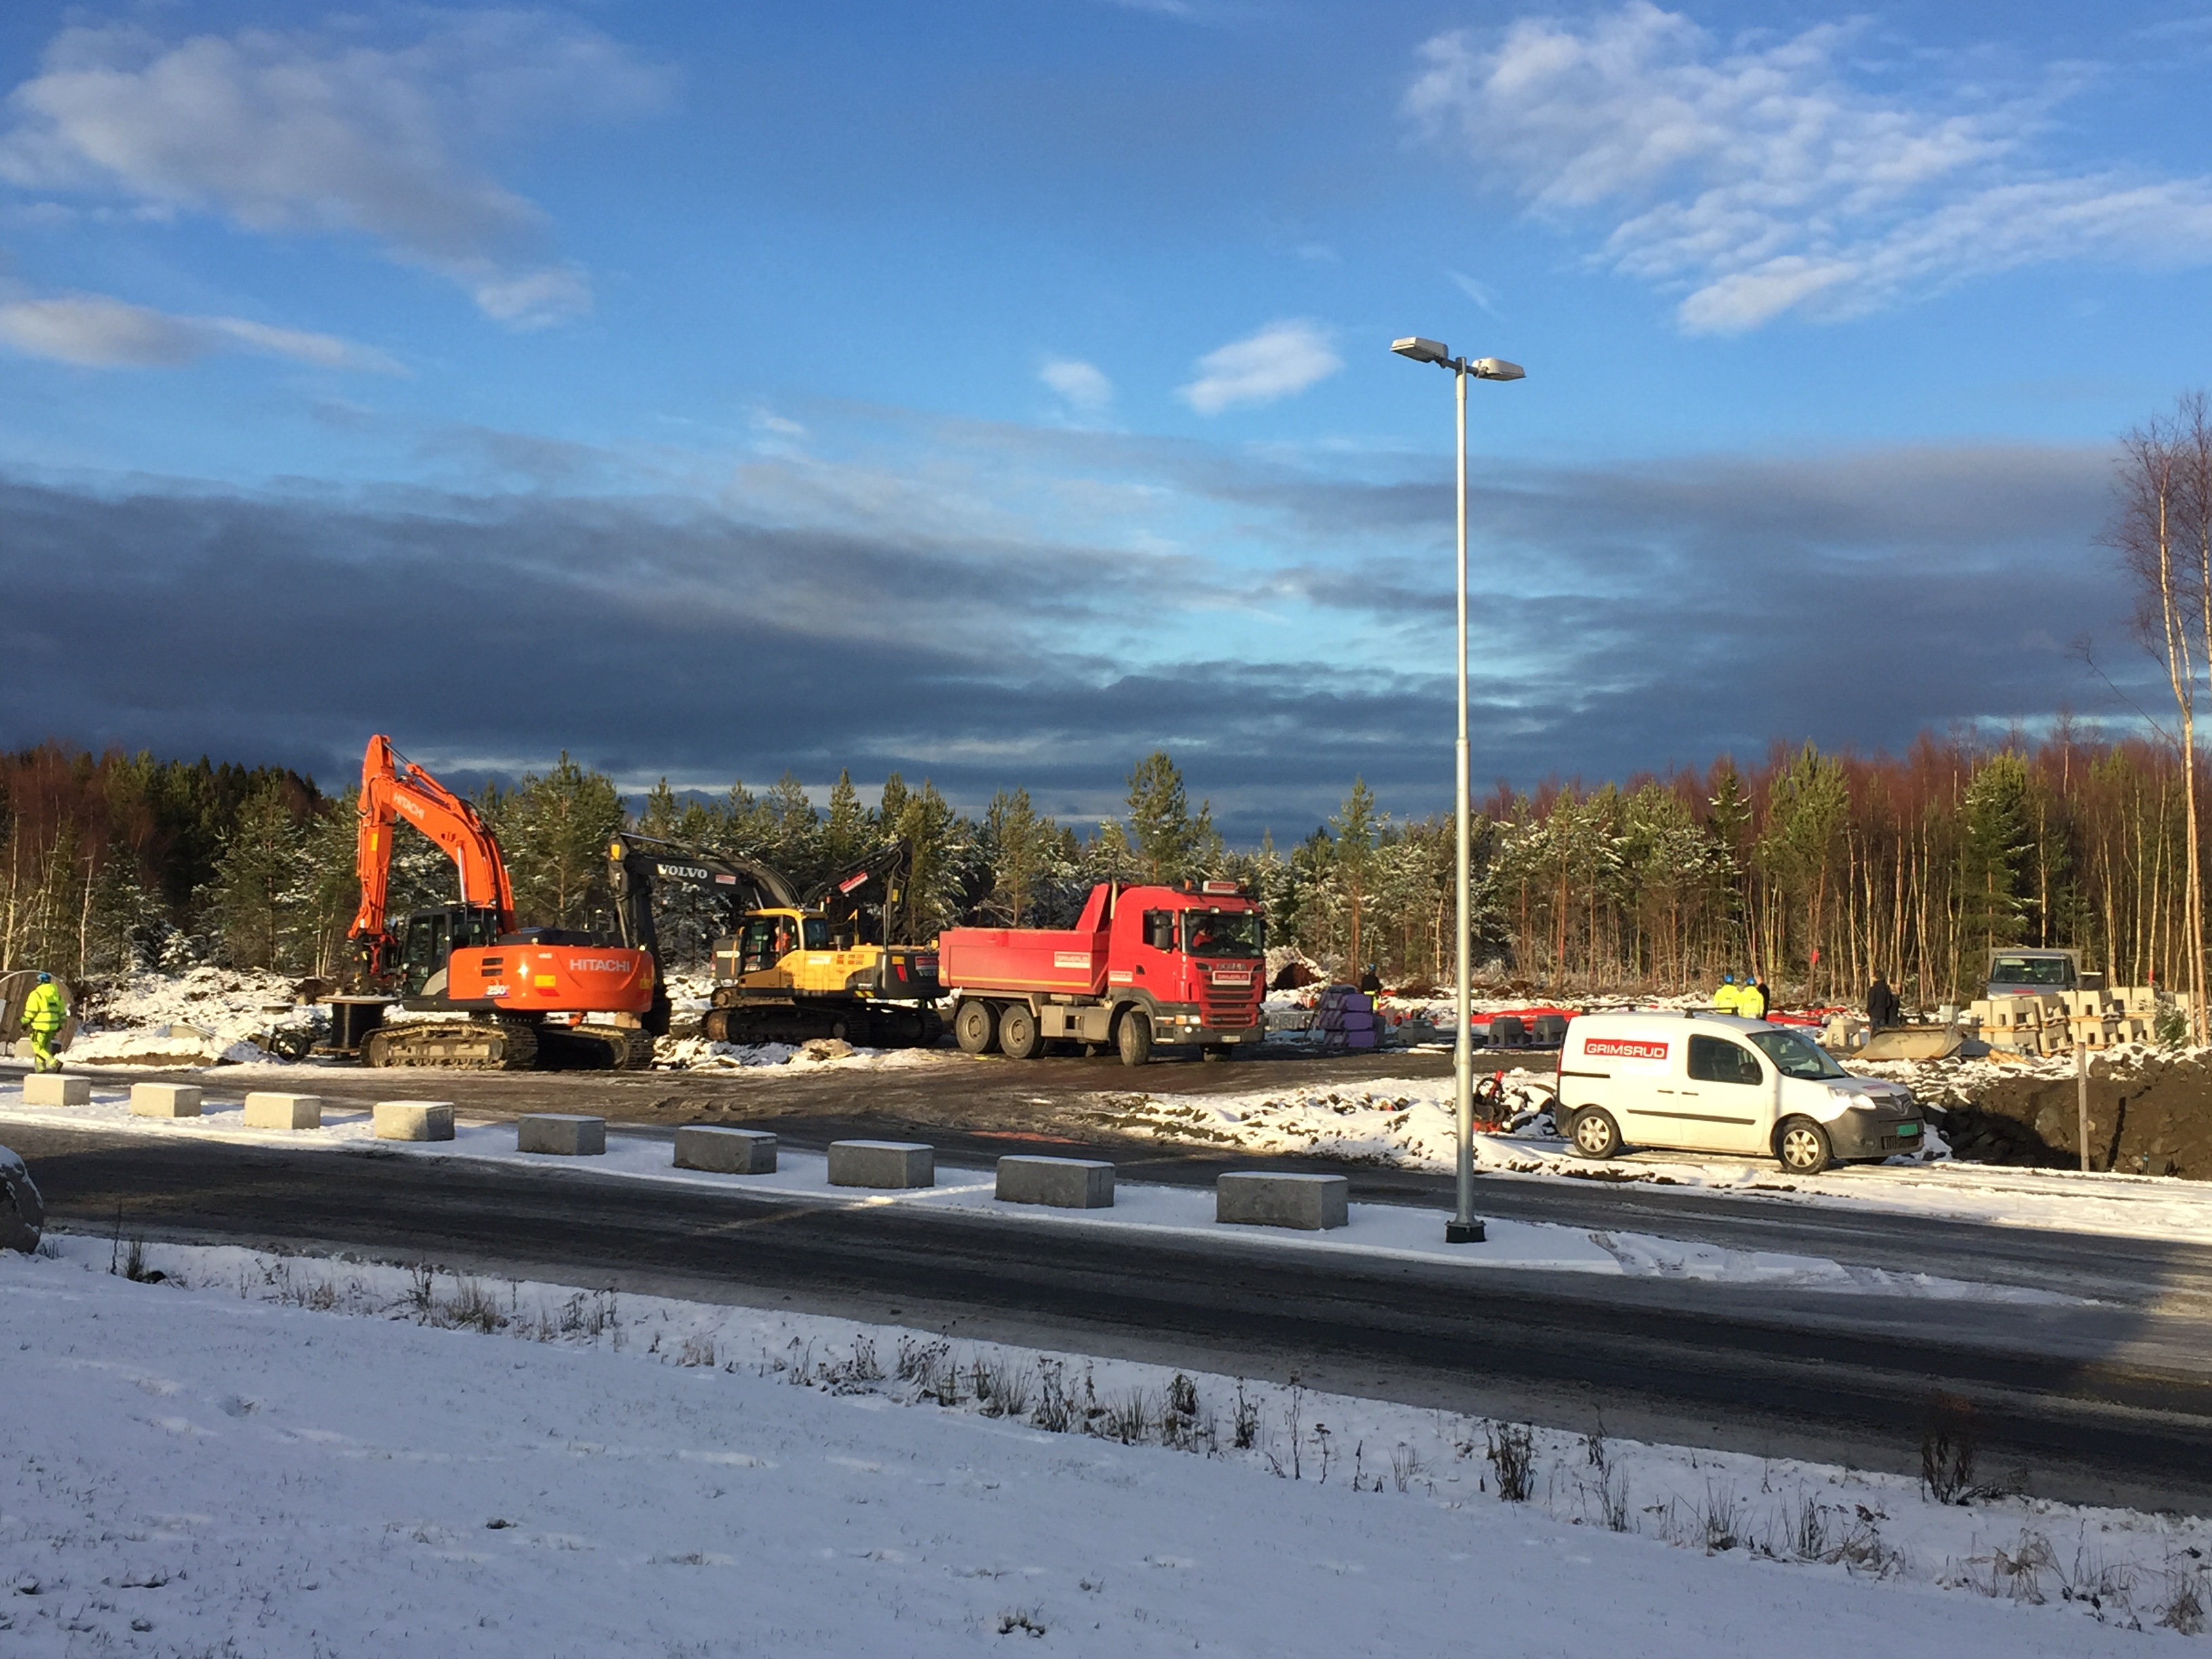 Rygge Supercharger Tesla Owners Club Norway